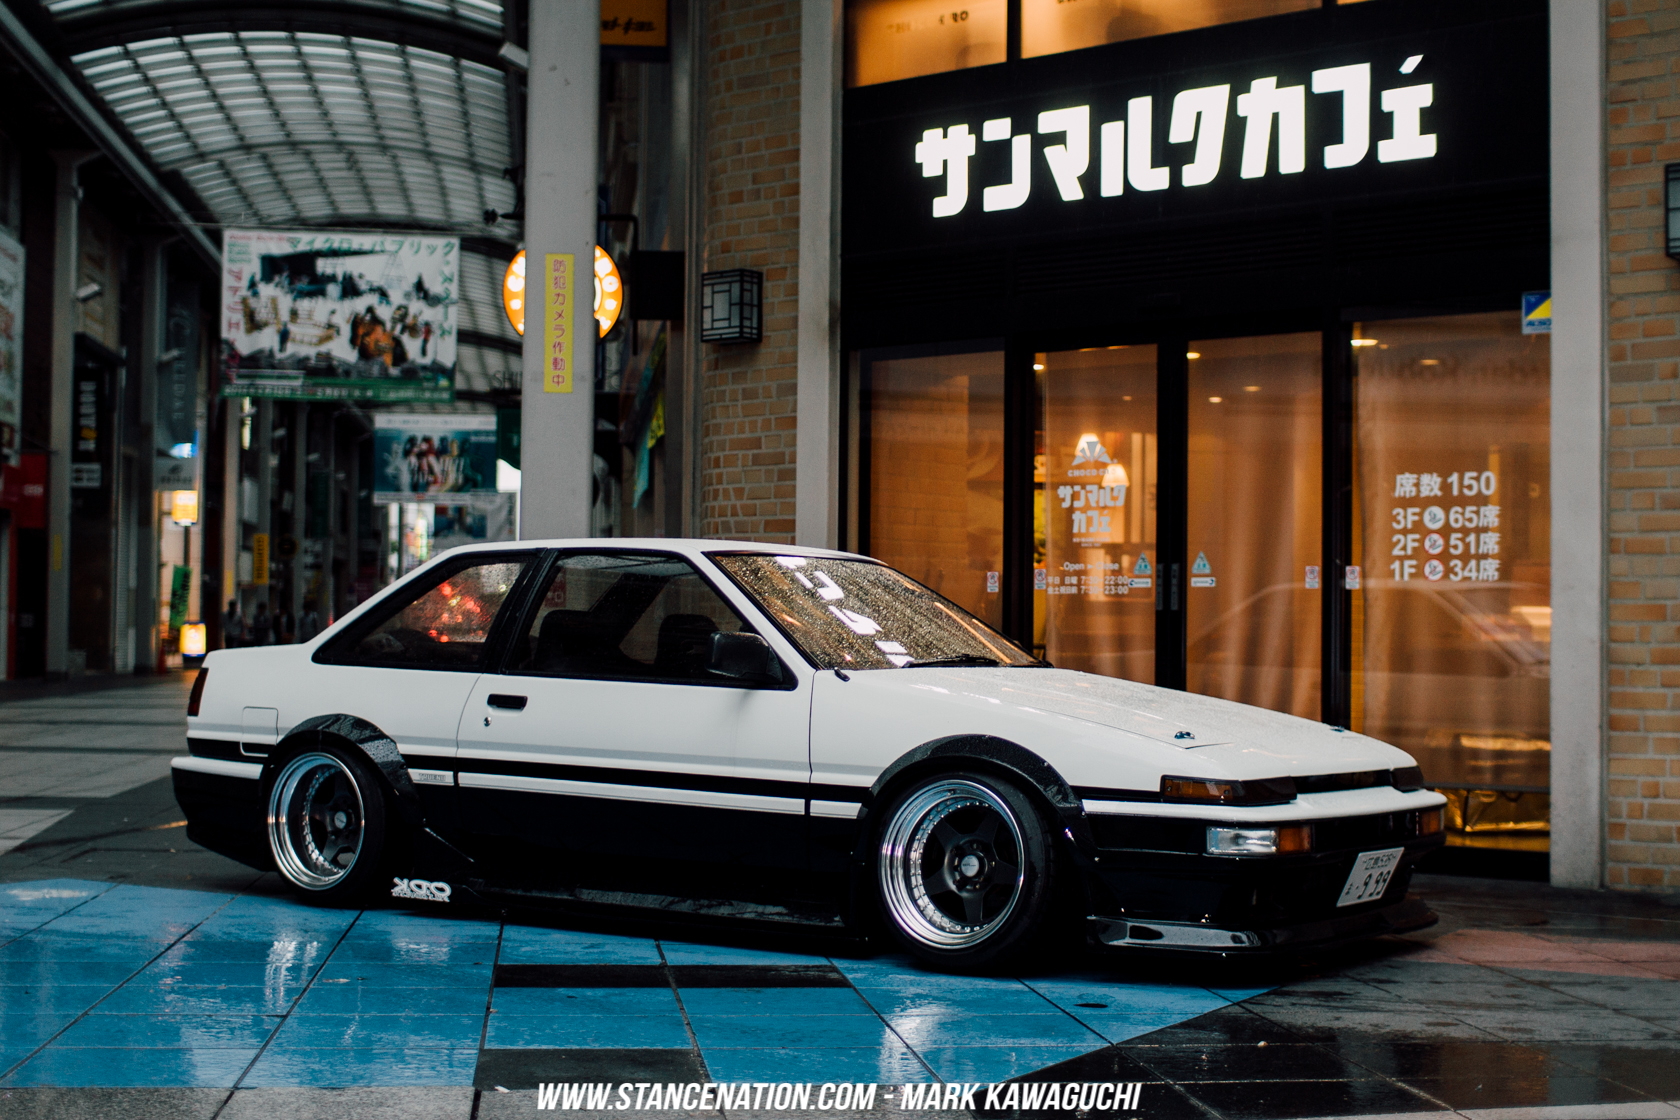 Incroyable Clean Hachiroku Stance 3